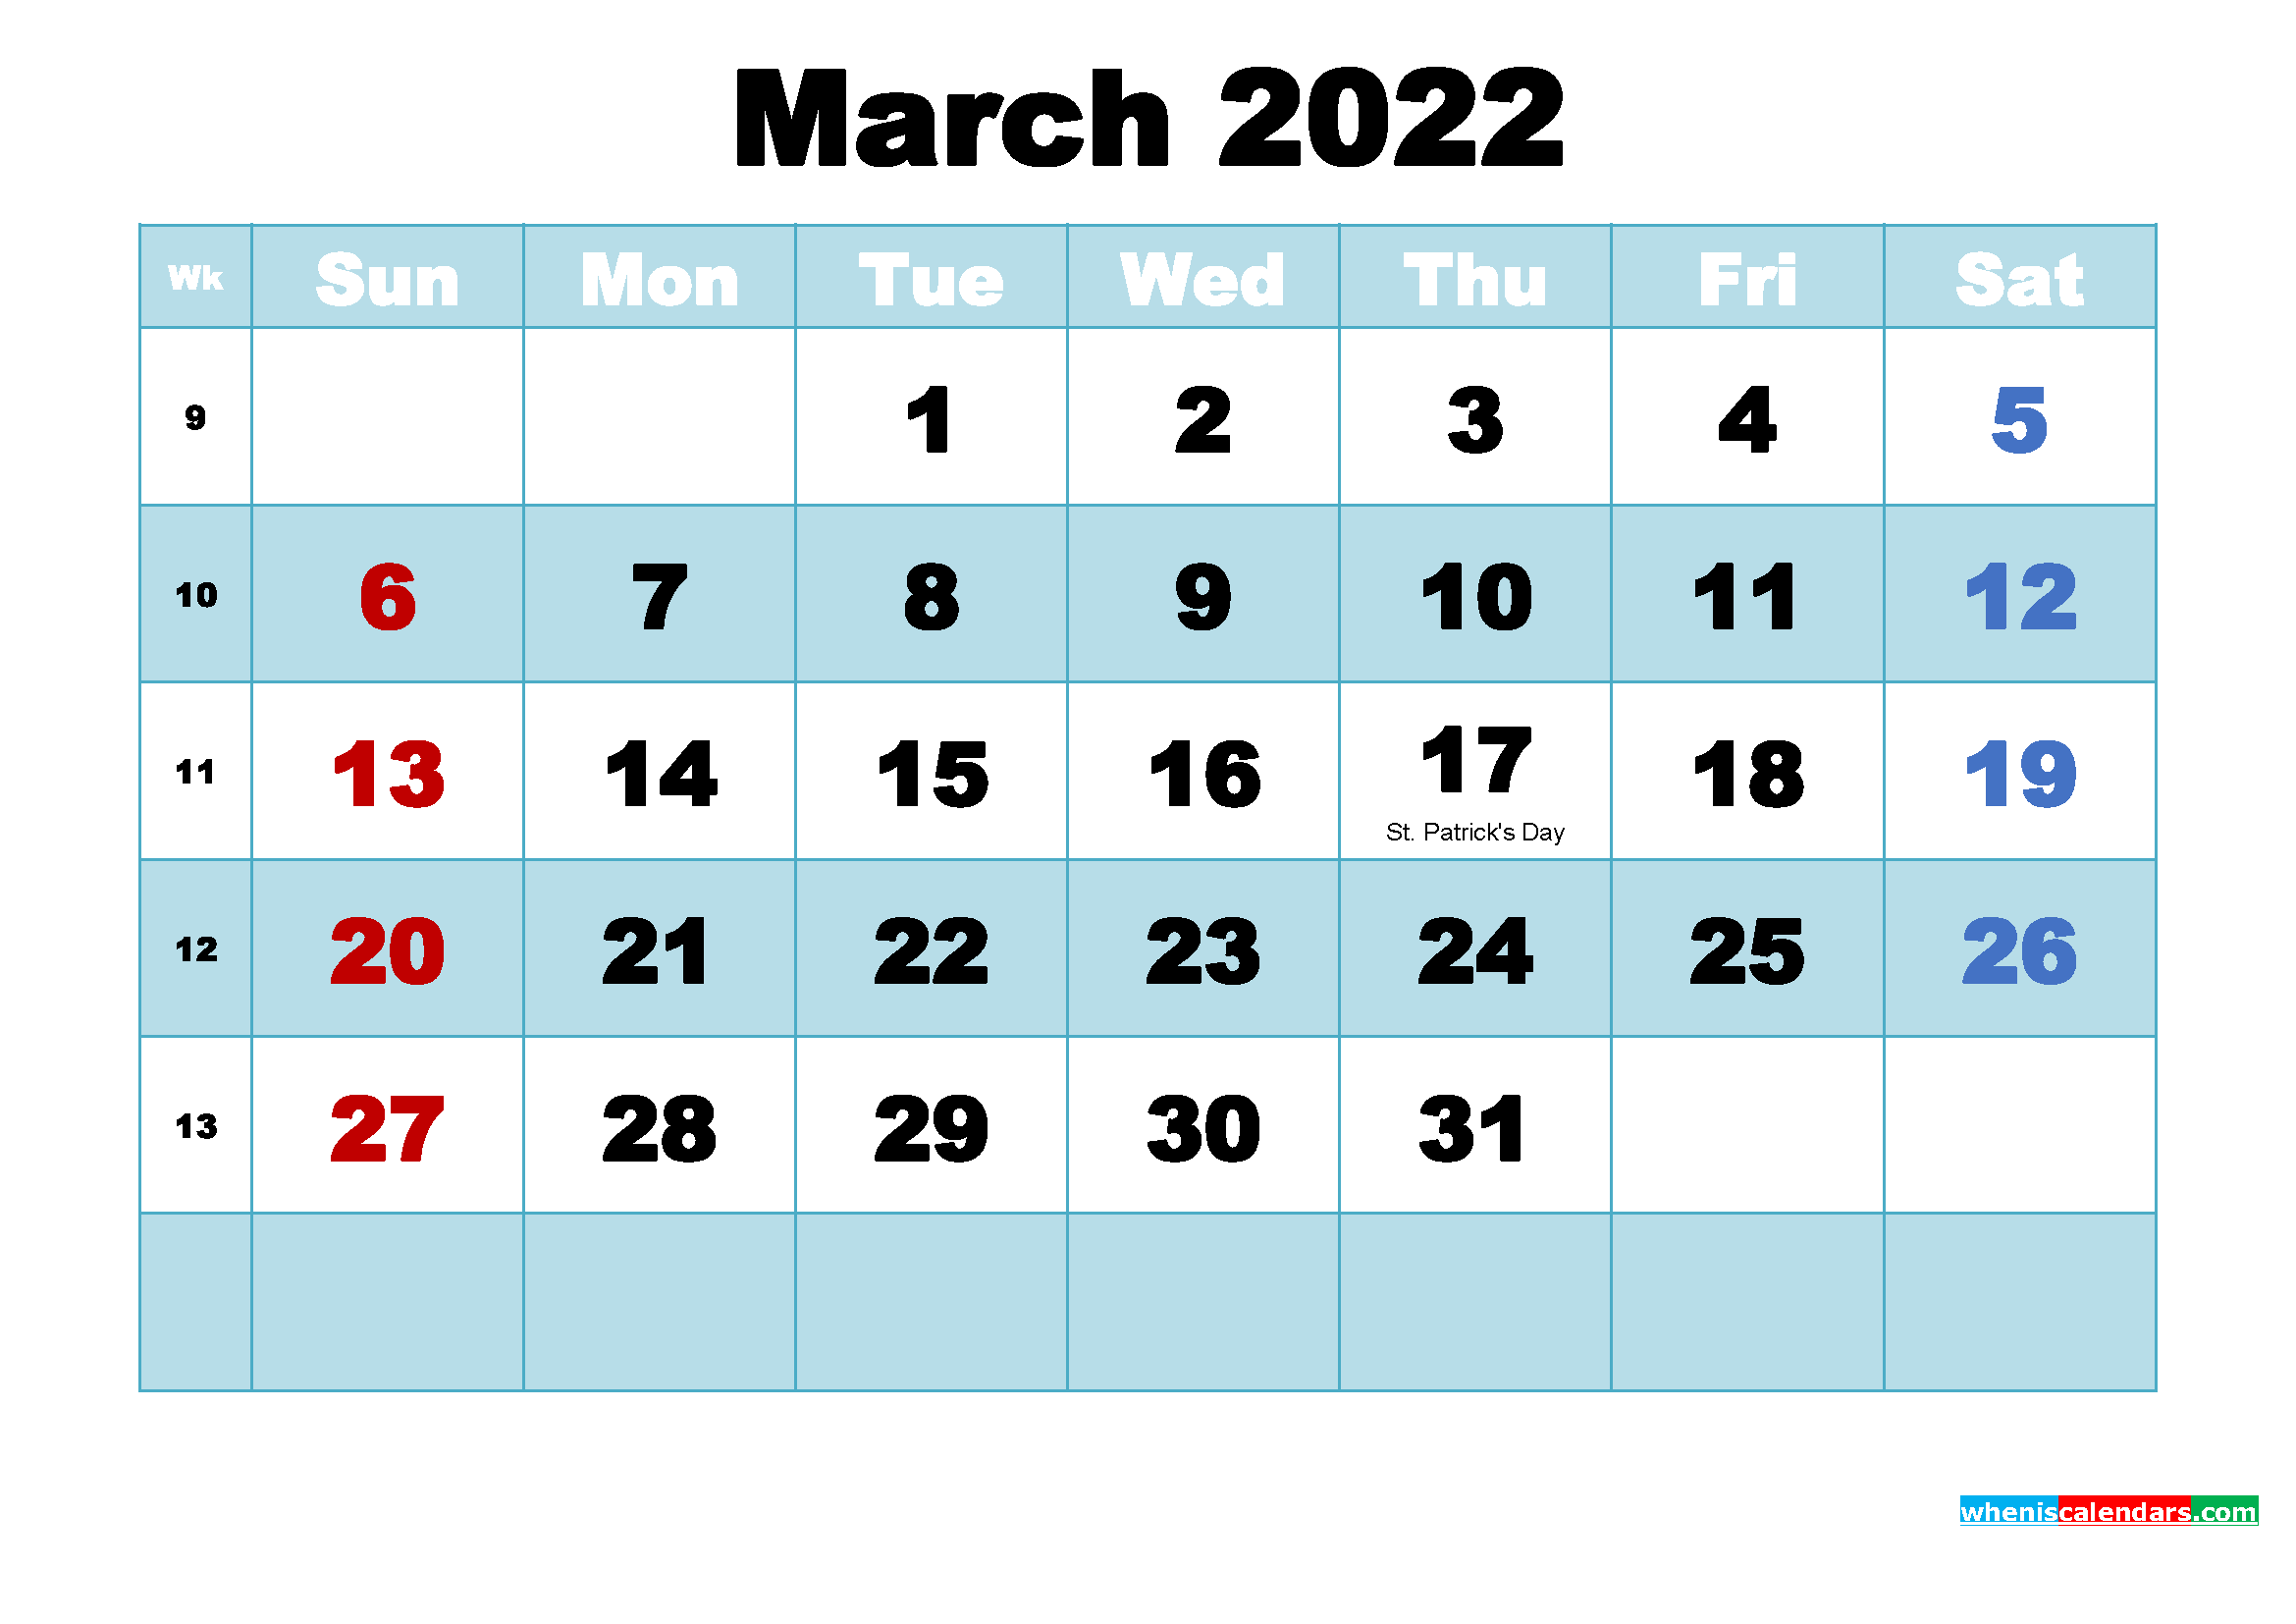 March 2022 Desktop Calendar with Holidays